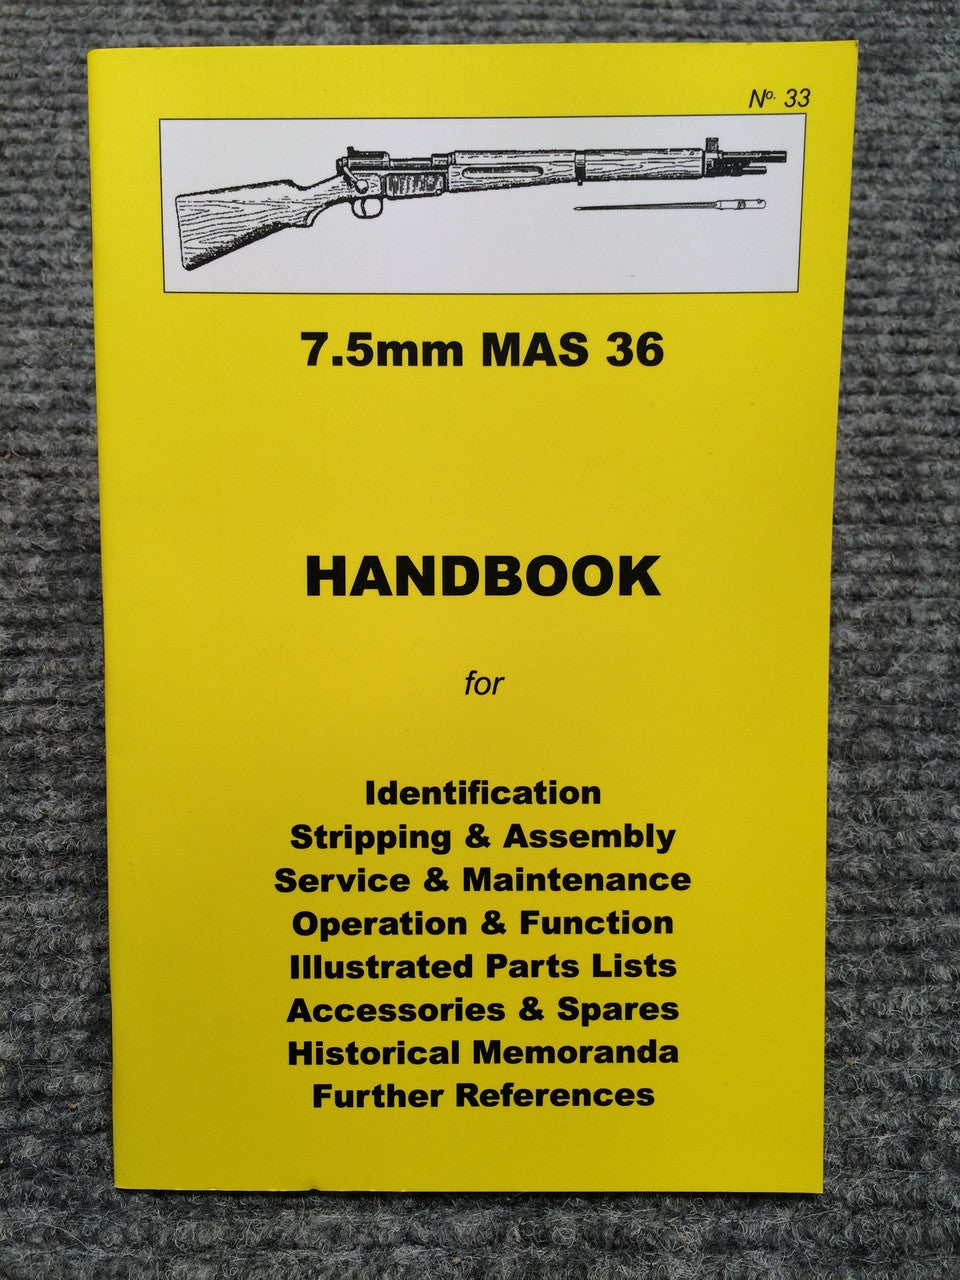 """7.5mm MAS 36 Handbook"" by Ian Skennerton"